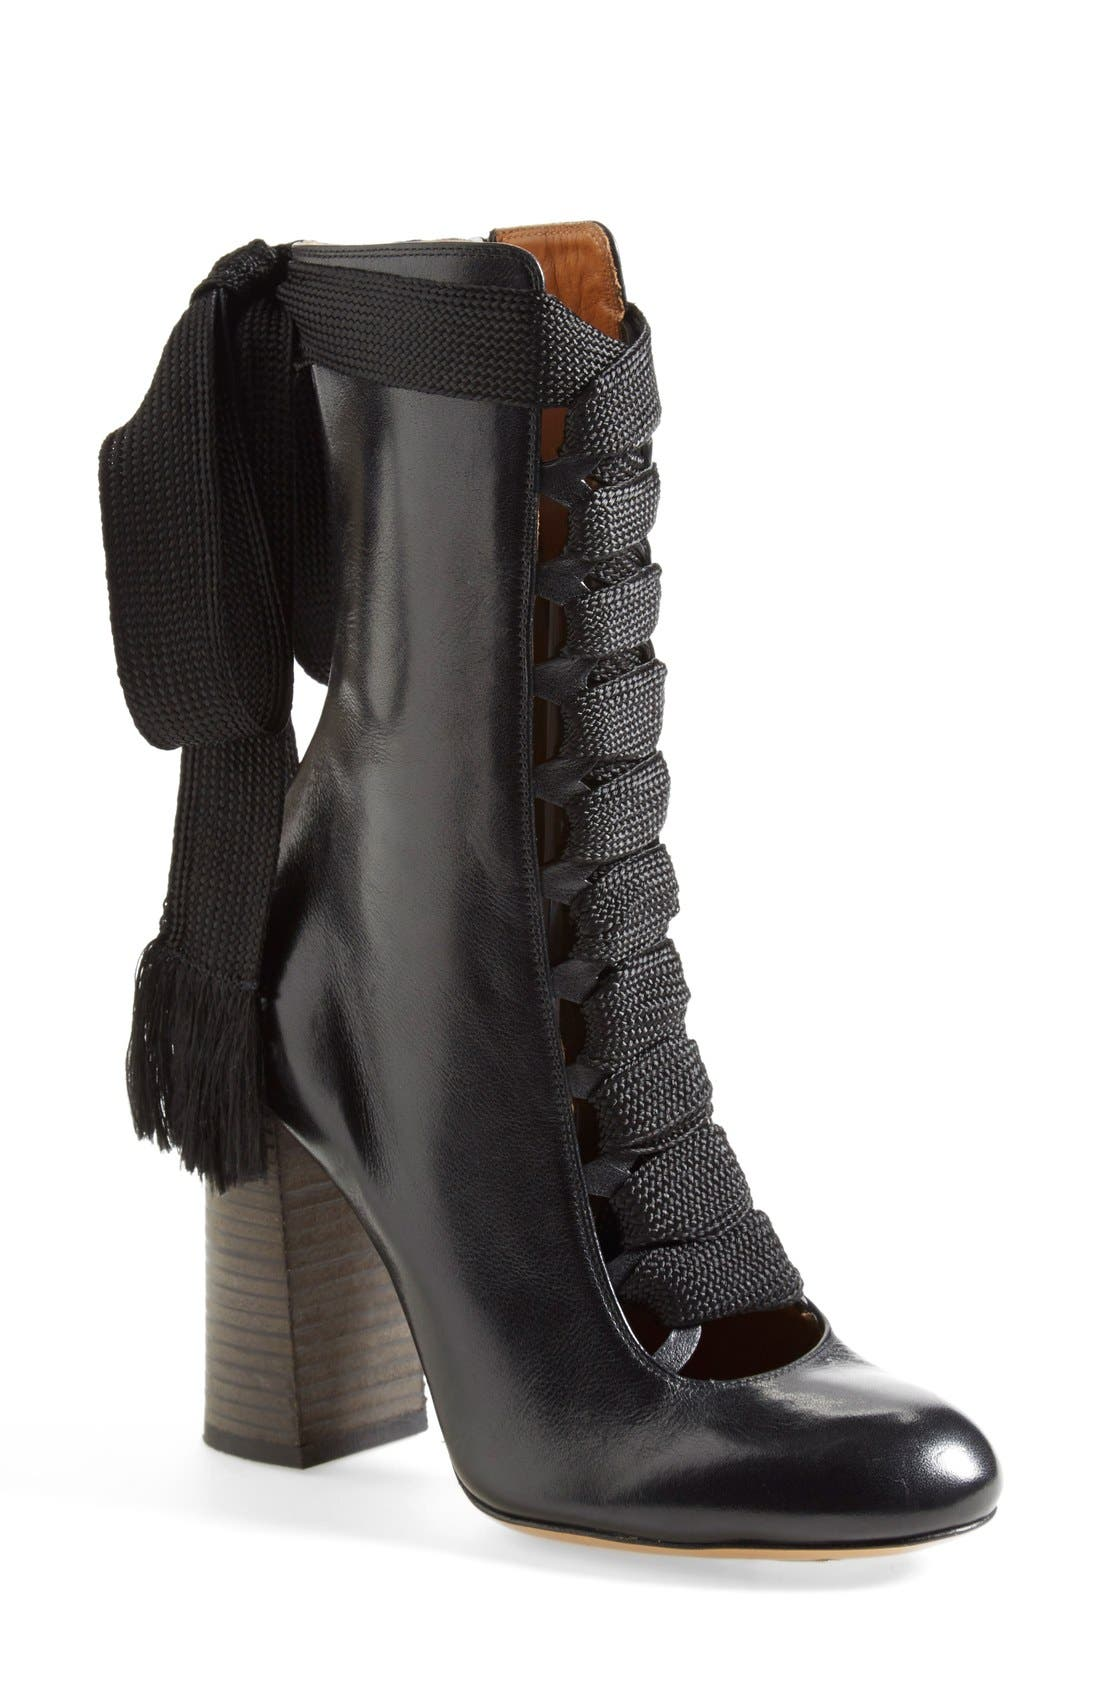 Main Image - Chloé 'Harper' Lace-Up Boot (Women)